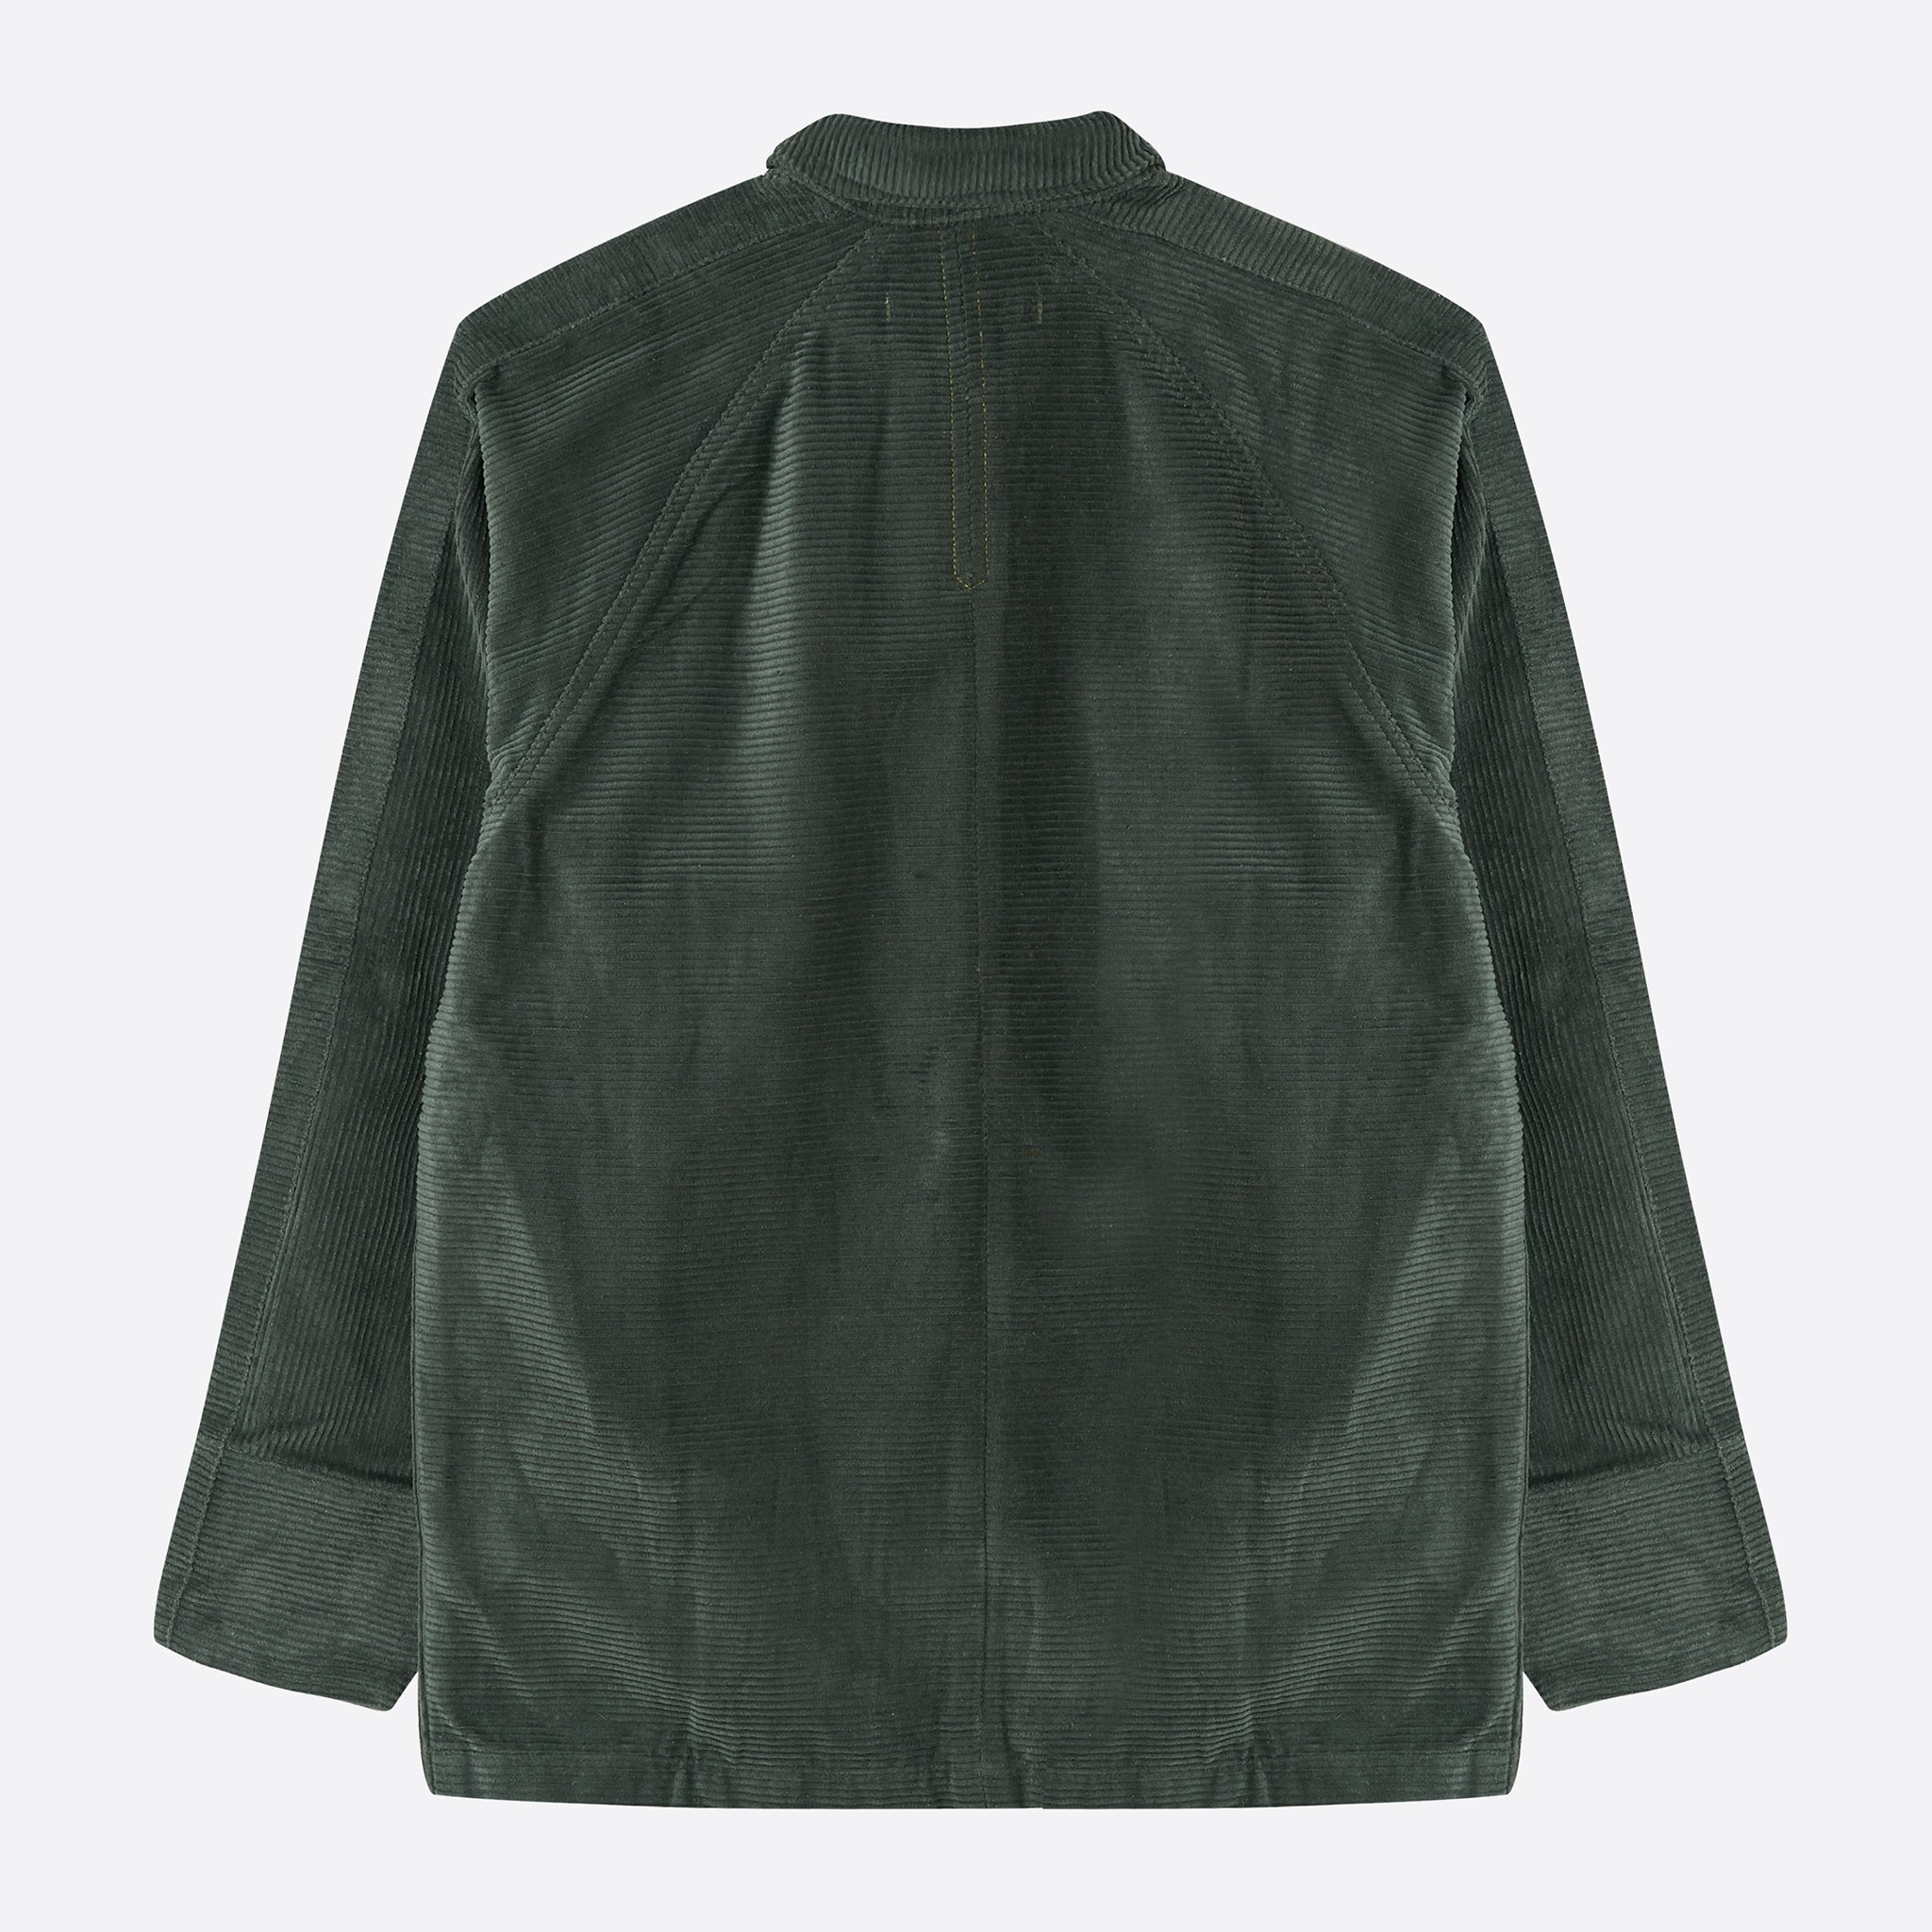 Sideline Mori Jacket in Olive